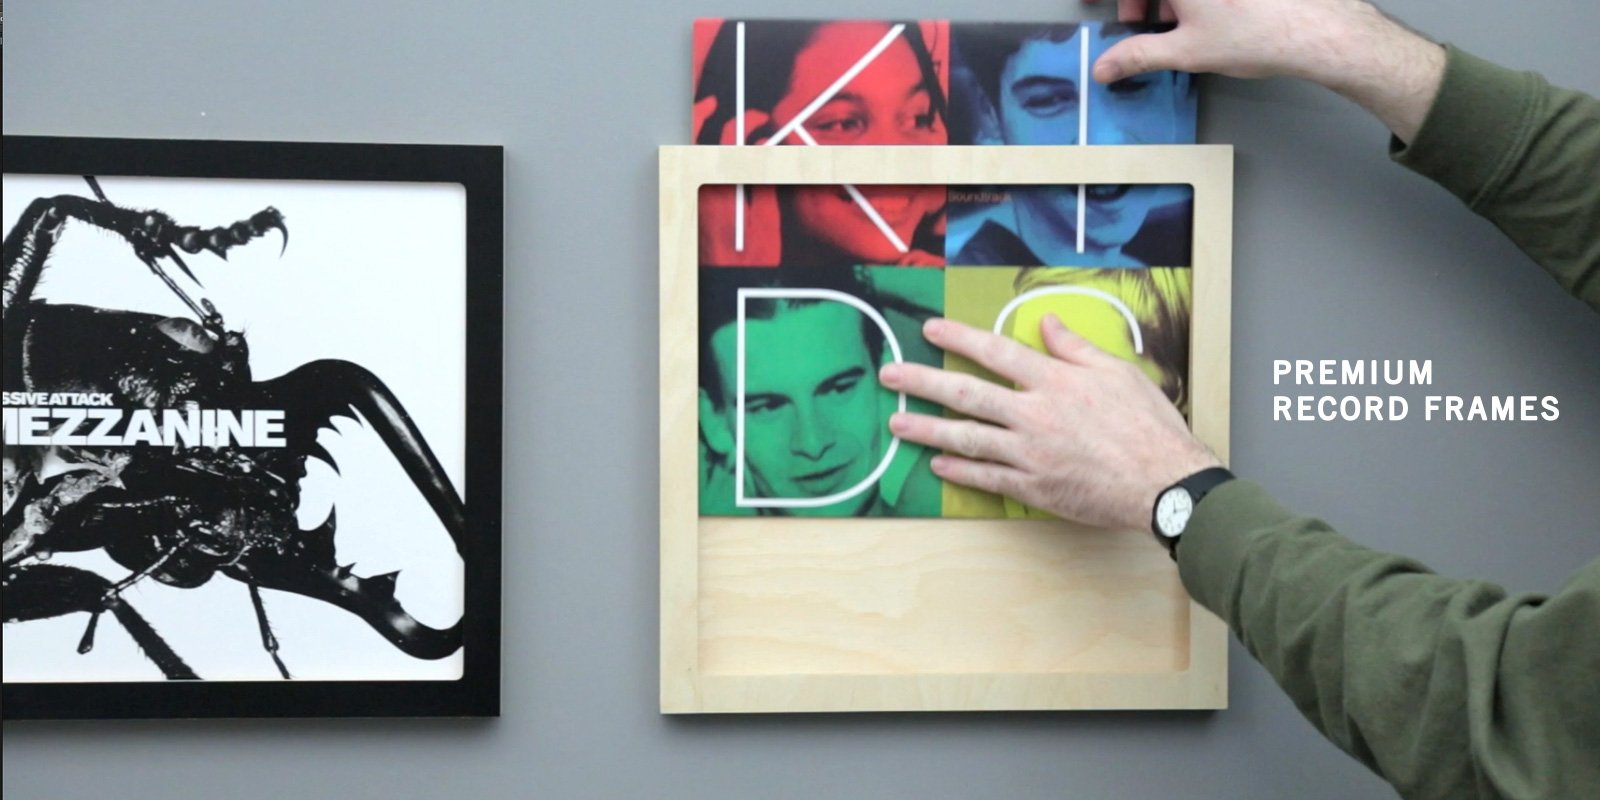 Line Phono Record Frames